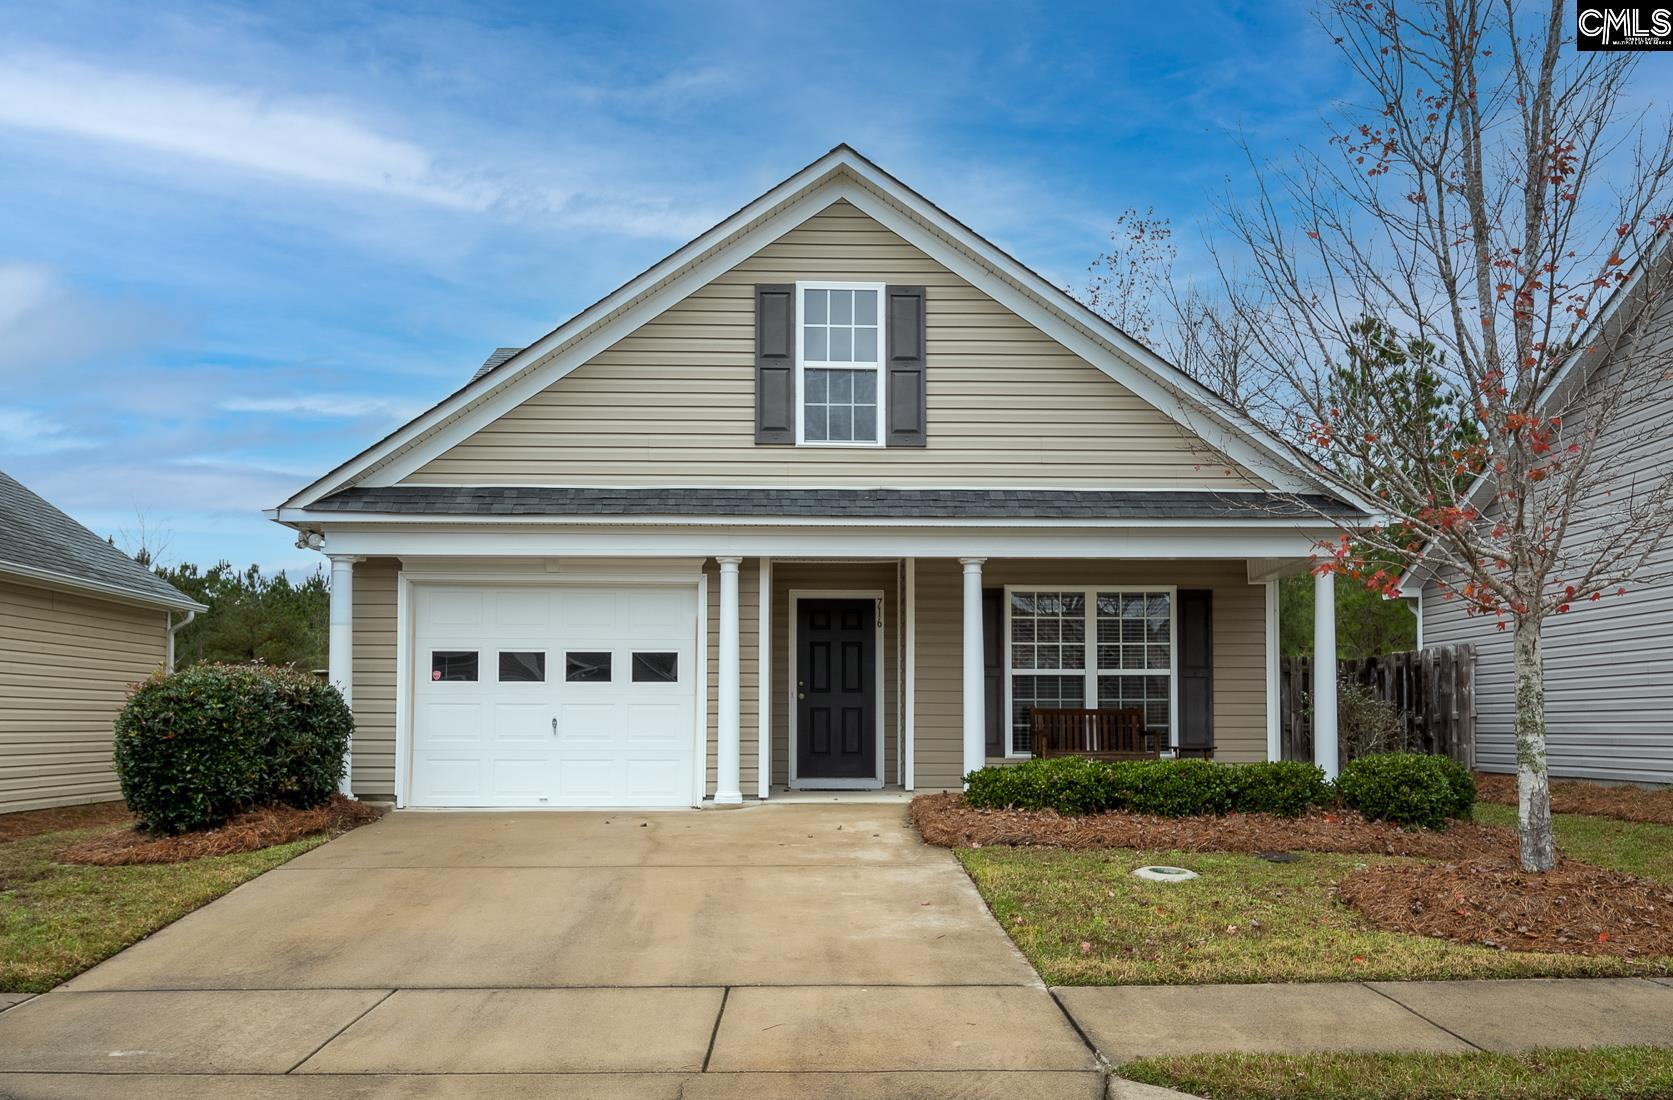 716 Silverbell Columbia, SC 29229-7825